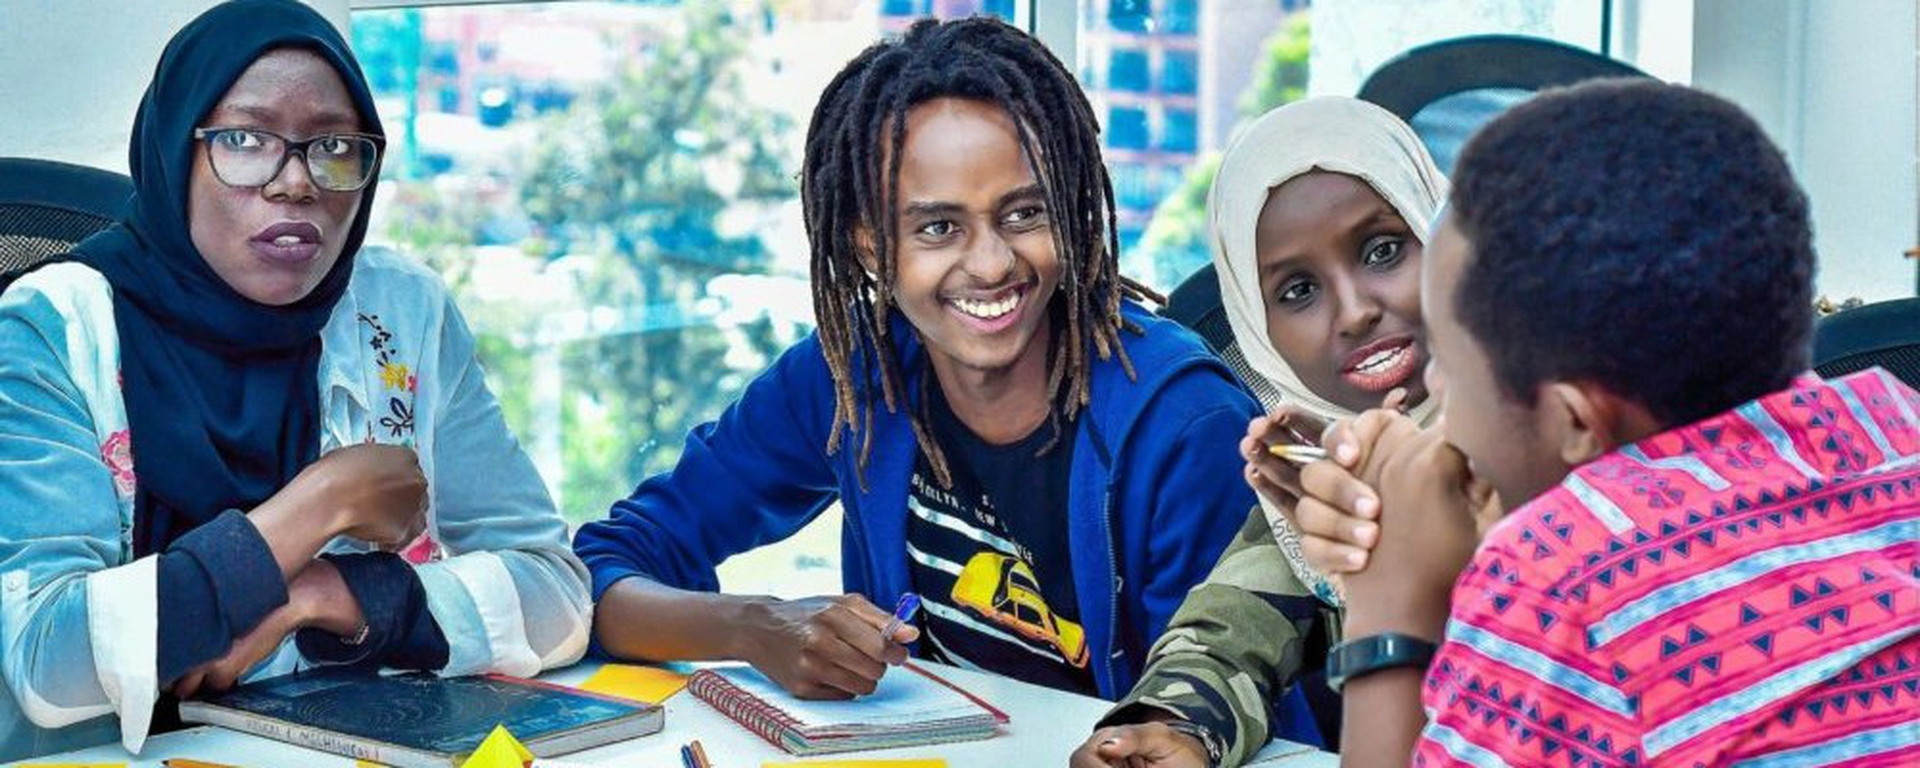 Africa YES Centre - The Yes 2020 Entrepreneurship Program Movemeback African initiative cover image